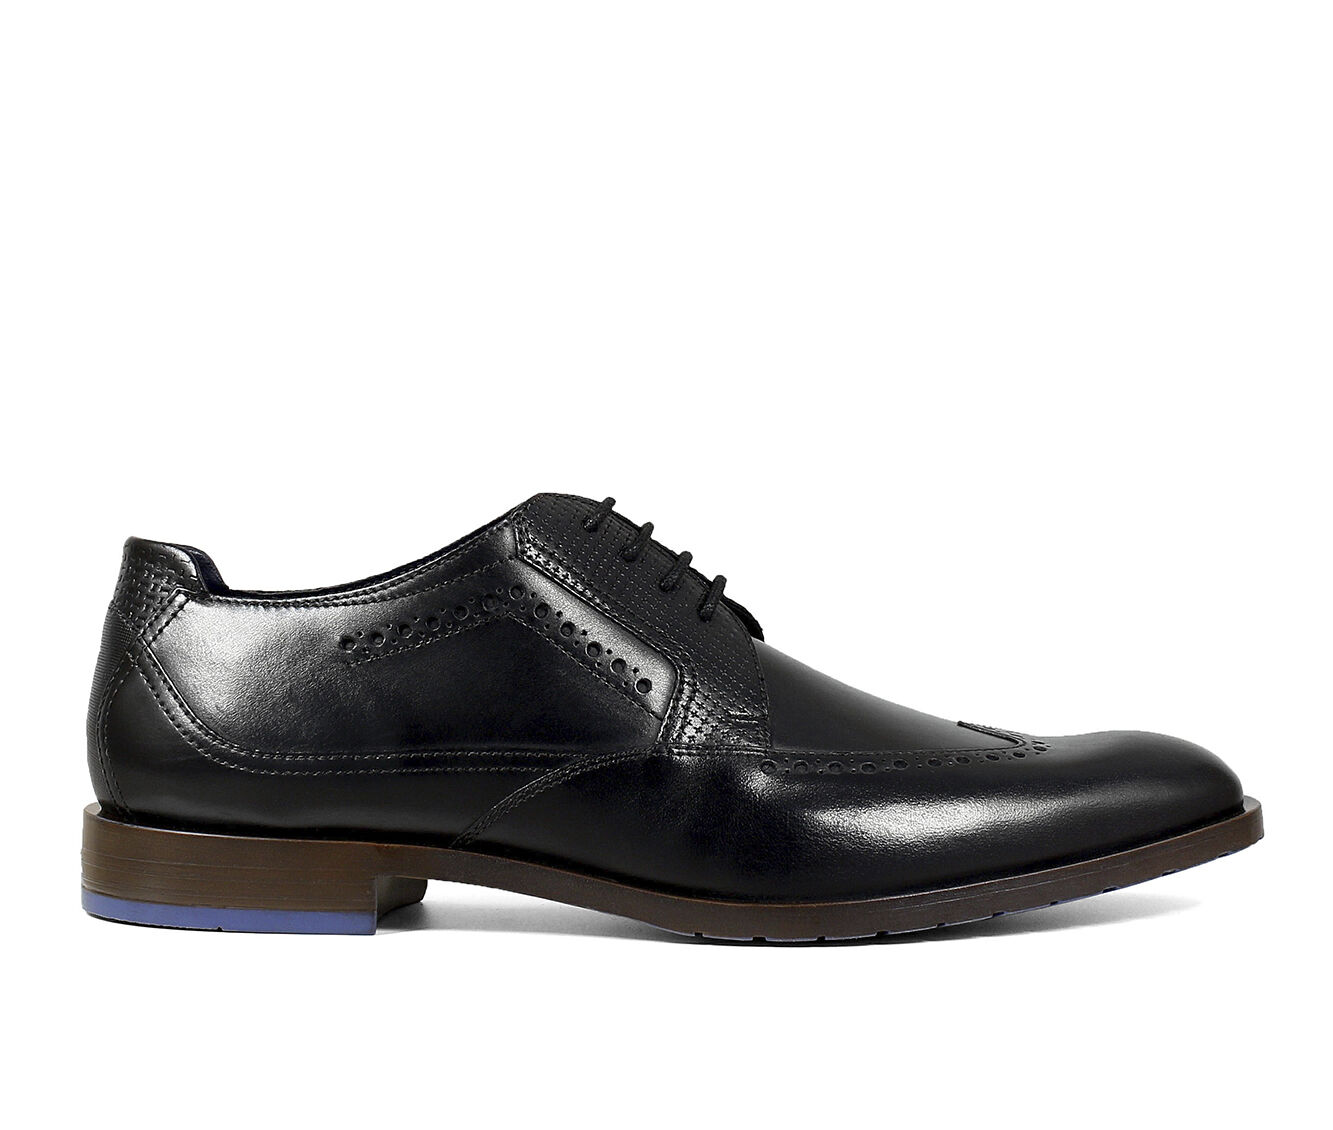 Men's Stacy Adams Rooney Dress Shoes Black